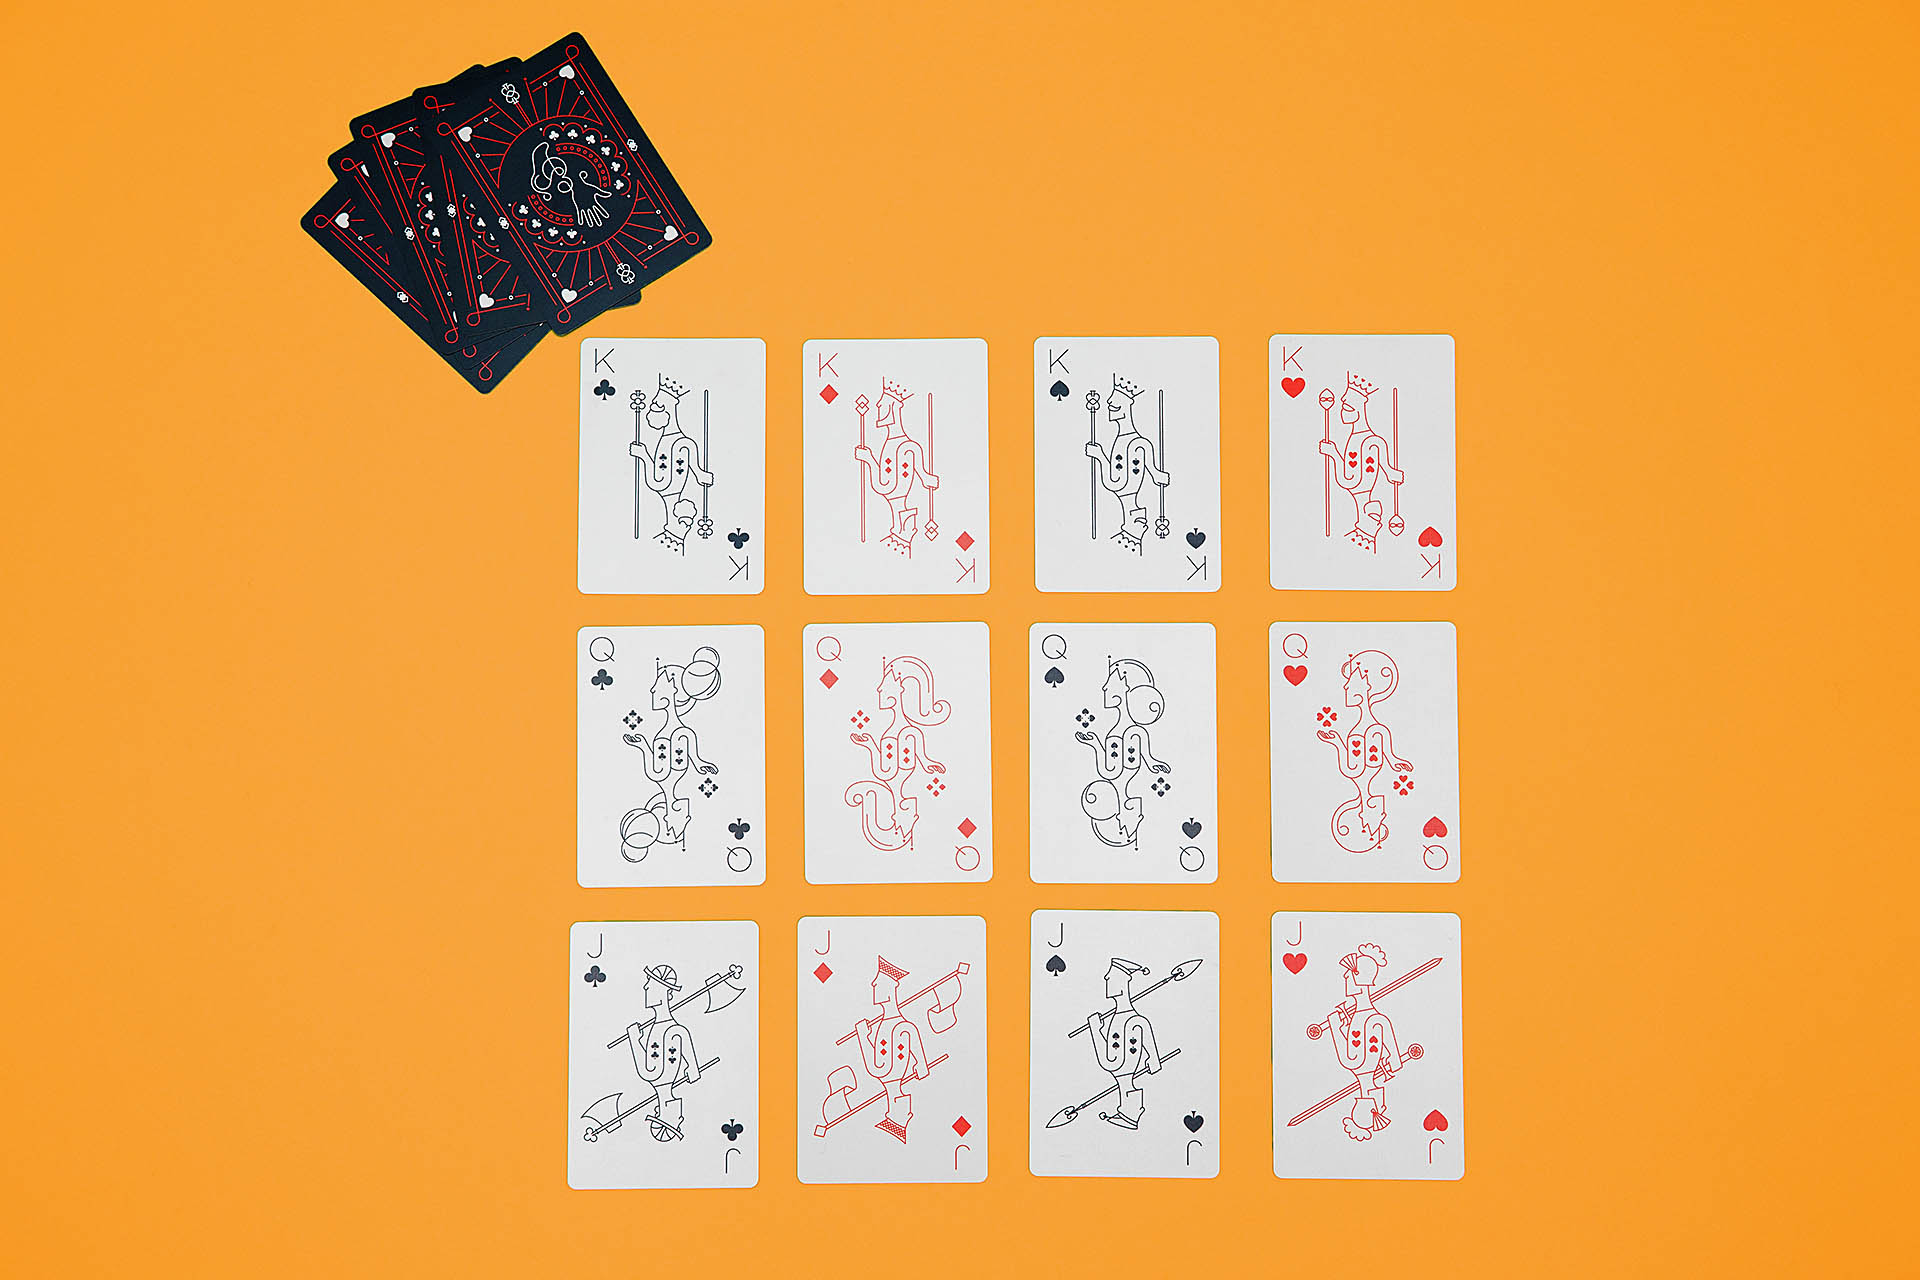 Kings, queens, and jacks laying face-up in a grid on an orange background